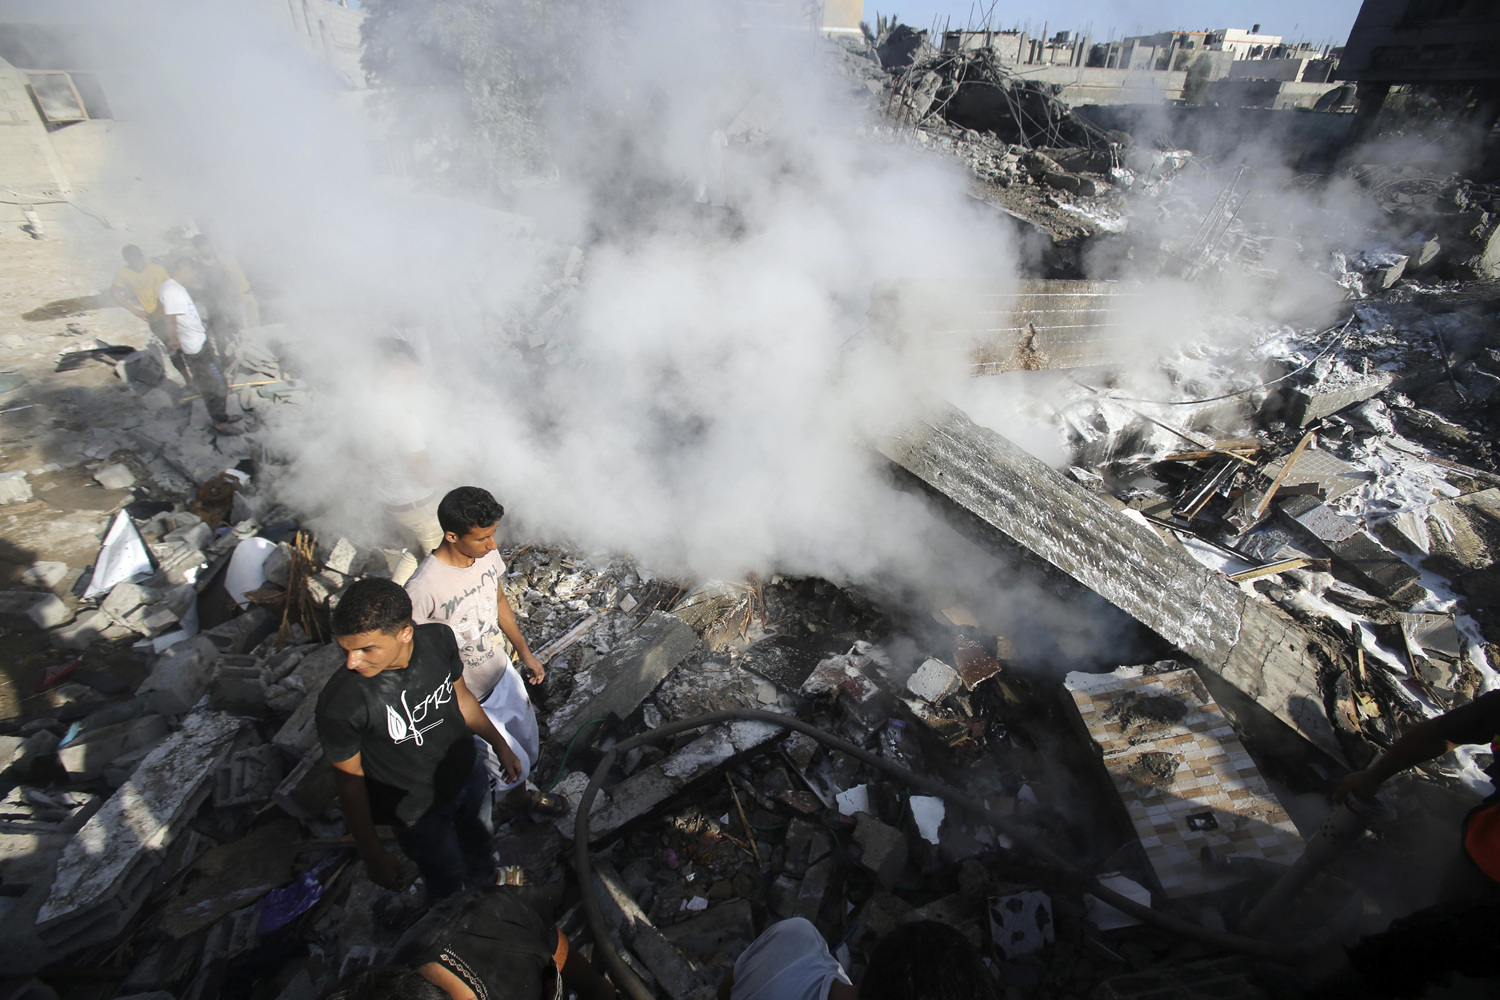 Palestinians stand atop the rubble of a house, which witnesses said was destroyed in an Israeli air strike, in Rafah in the southern Gaza Strip on August 20, 2014.